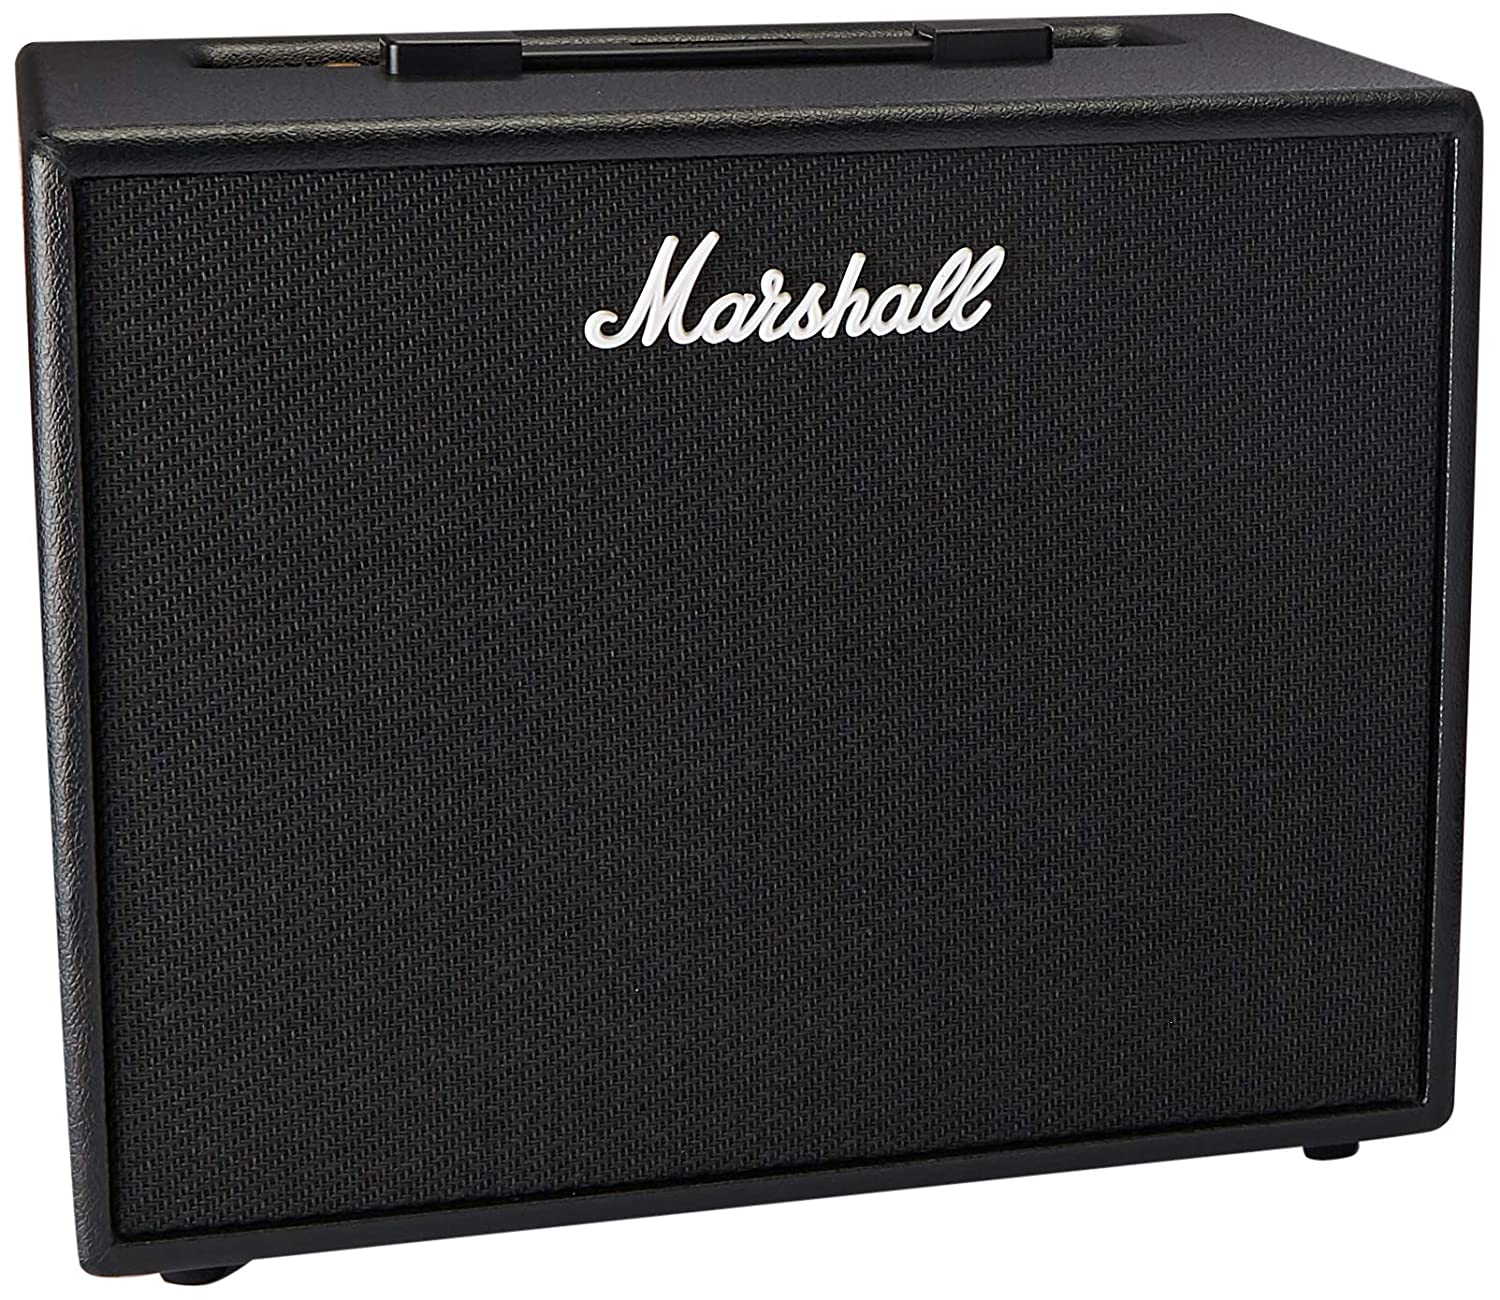 7. Marshall Code 50-50 Digital Combo Amp - Best Programmable Option